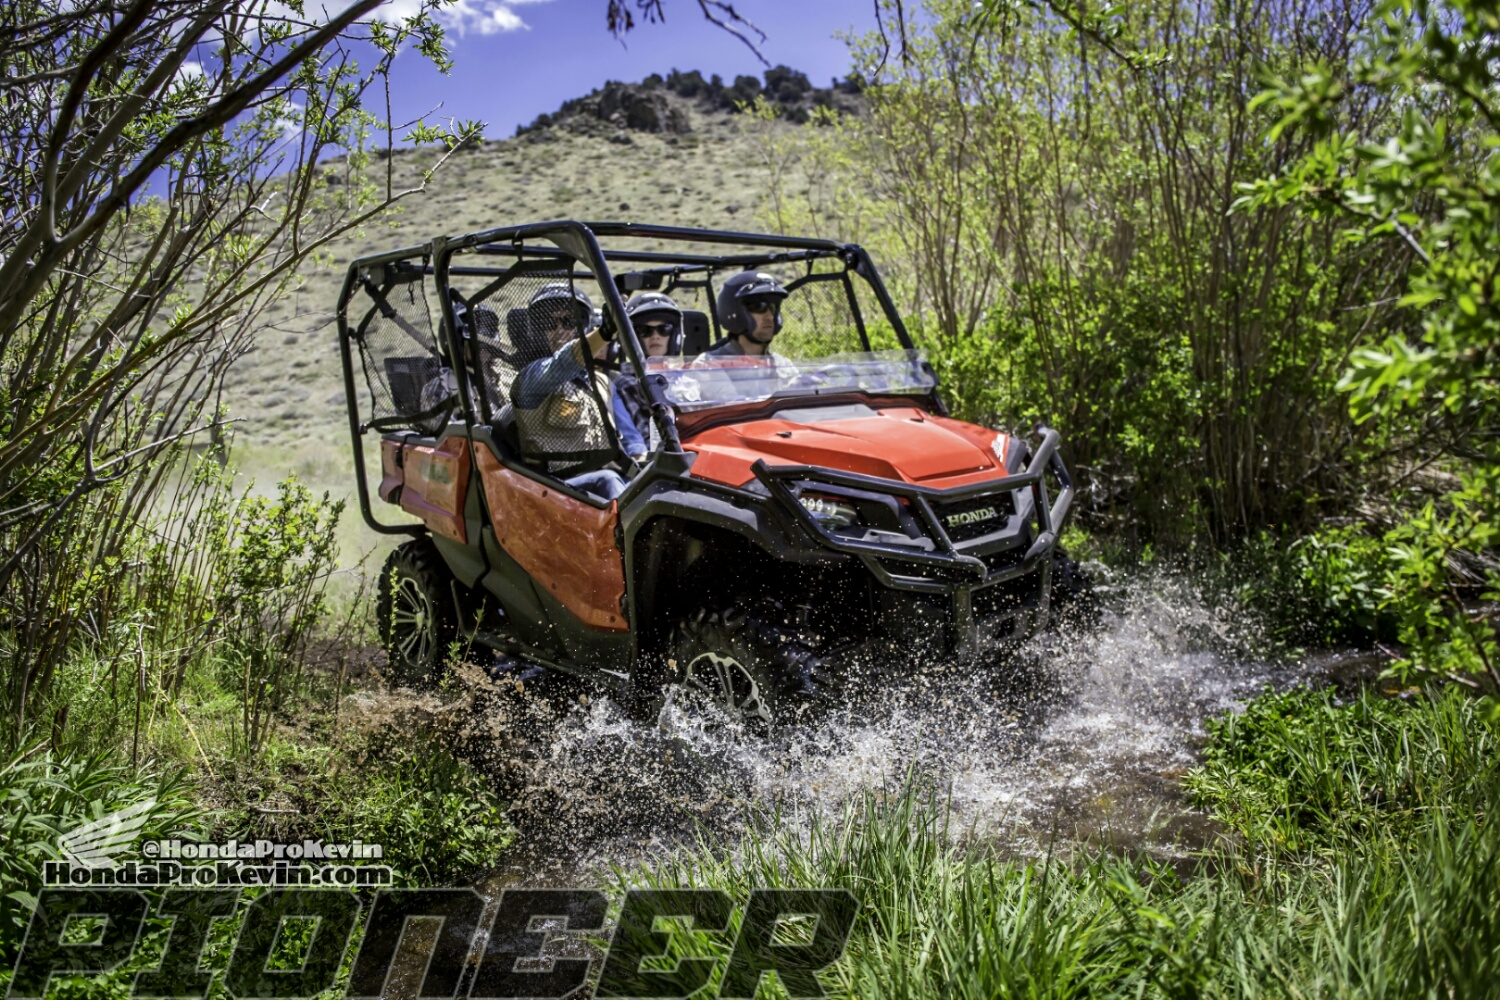 2016 honda pioneer 1000 review specs pictures videos. Black Bedroom Furniture Sets. Home Design Ideas